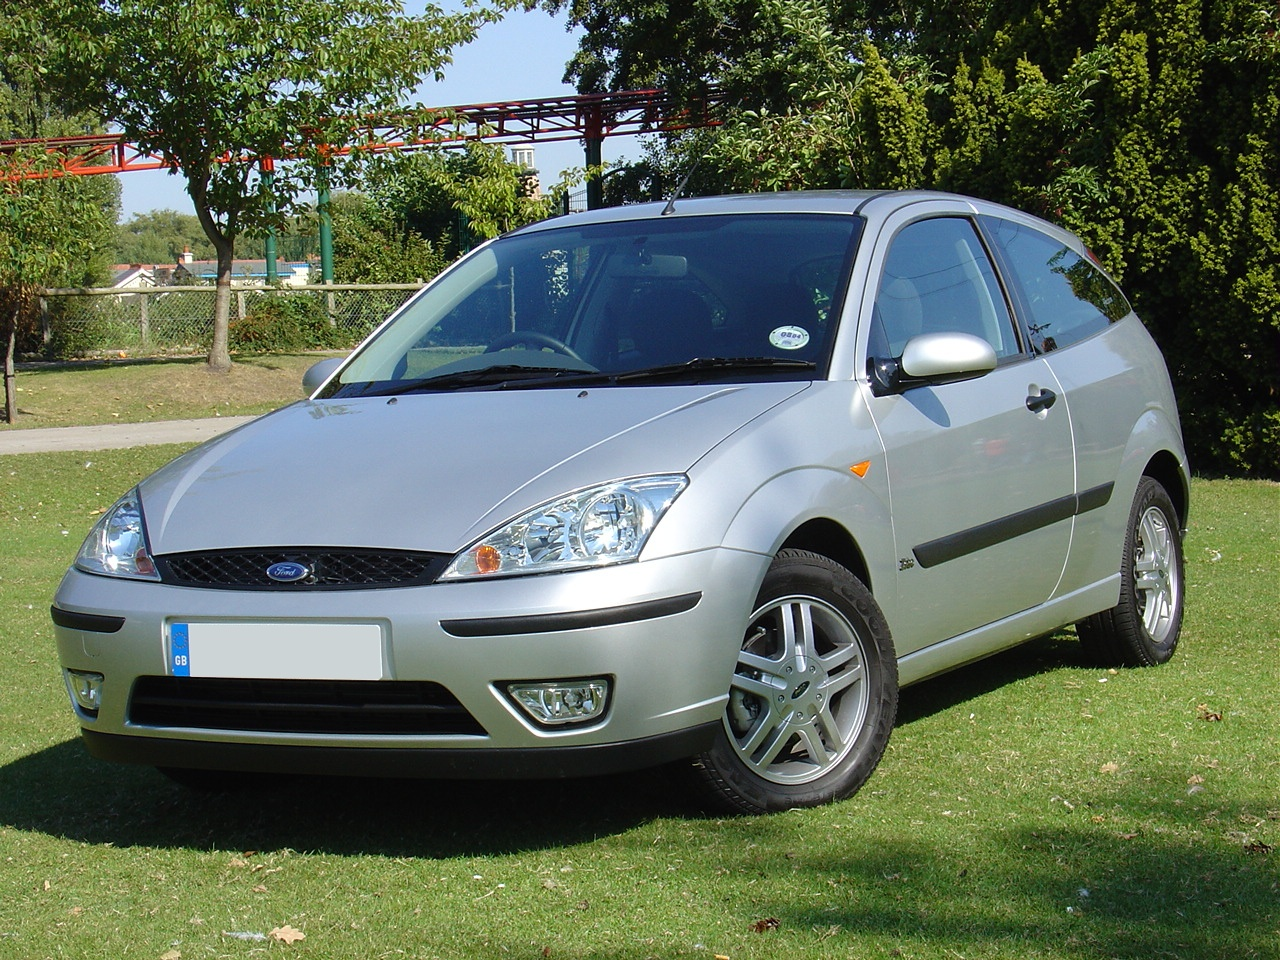 ford focus 1.8-pic. 1